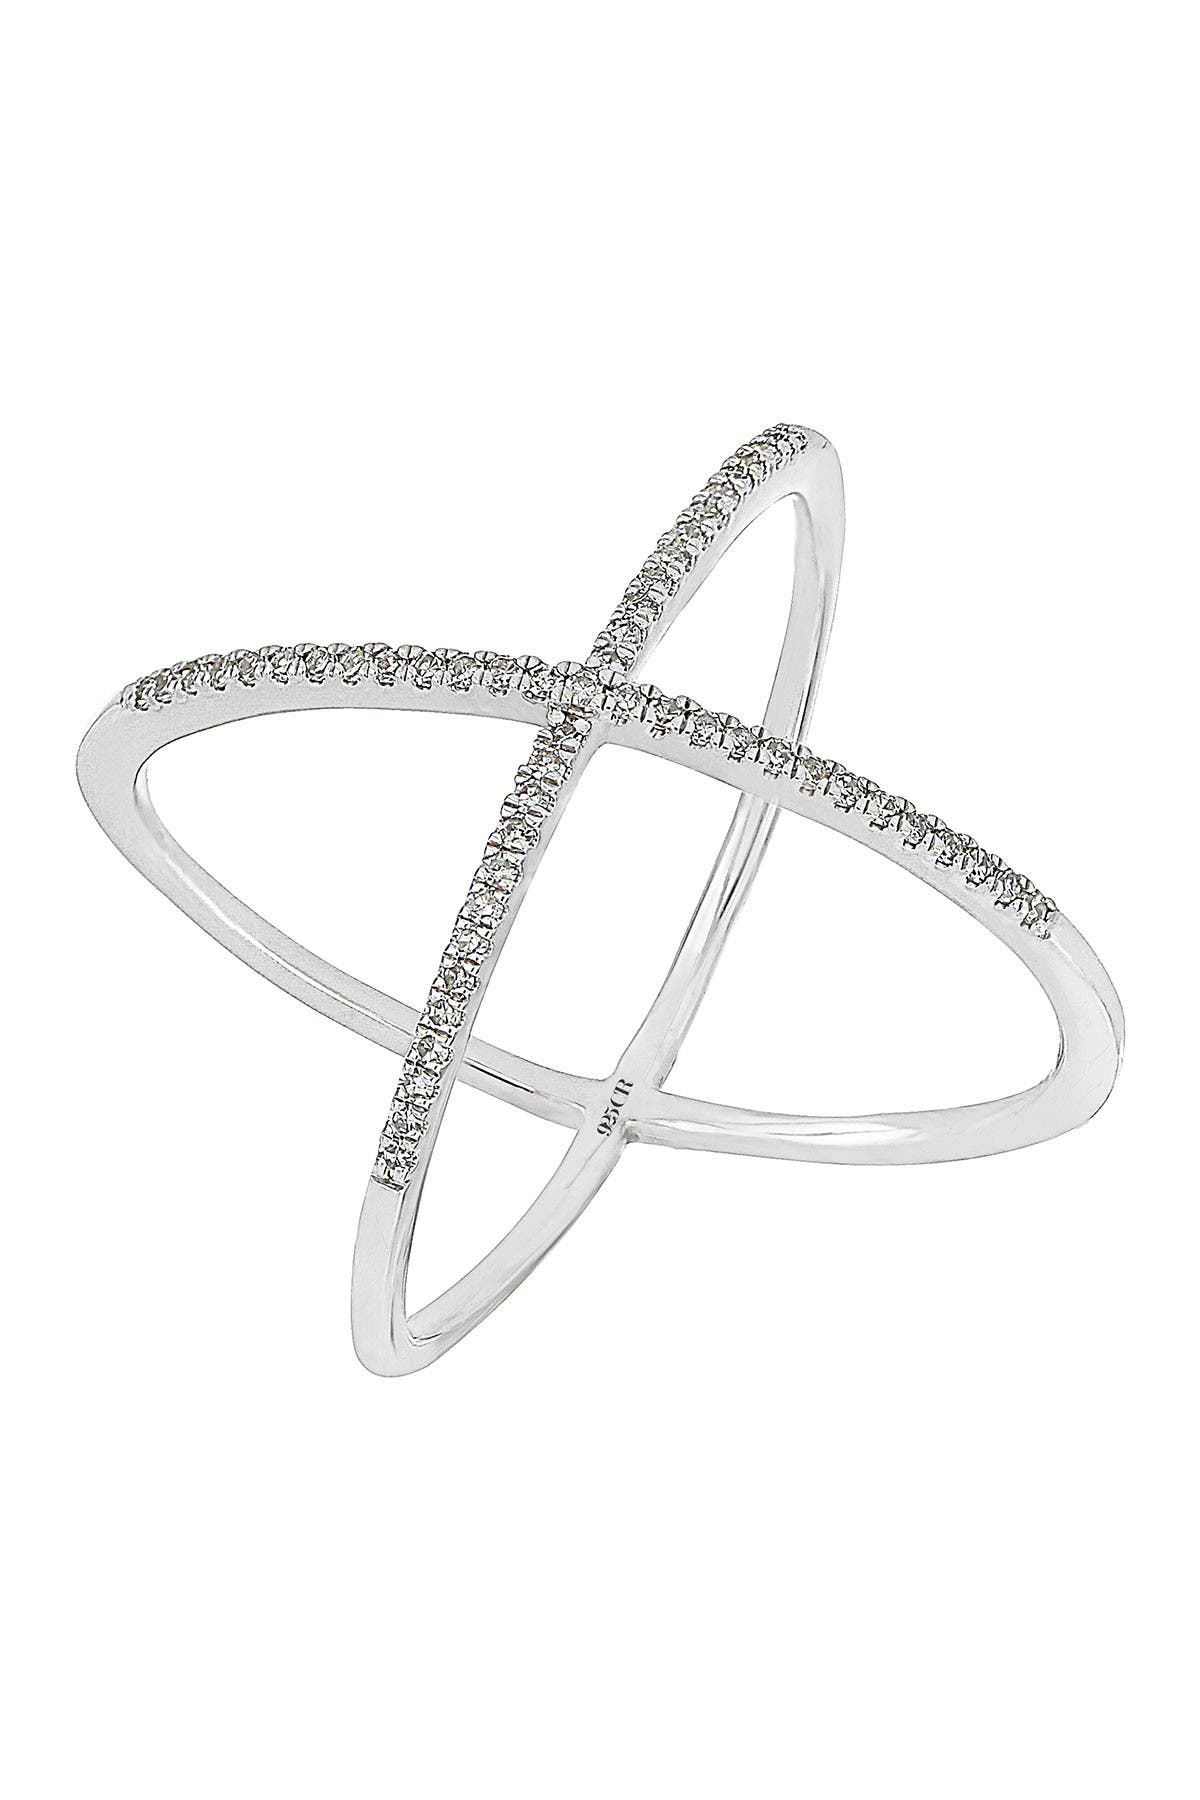 Image of Carriere Sterling Silver Diamond Crisscross Ring - 0.16 ctw